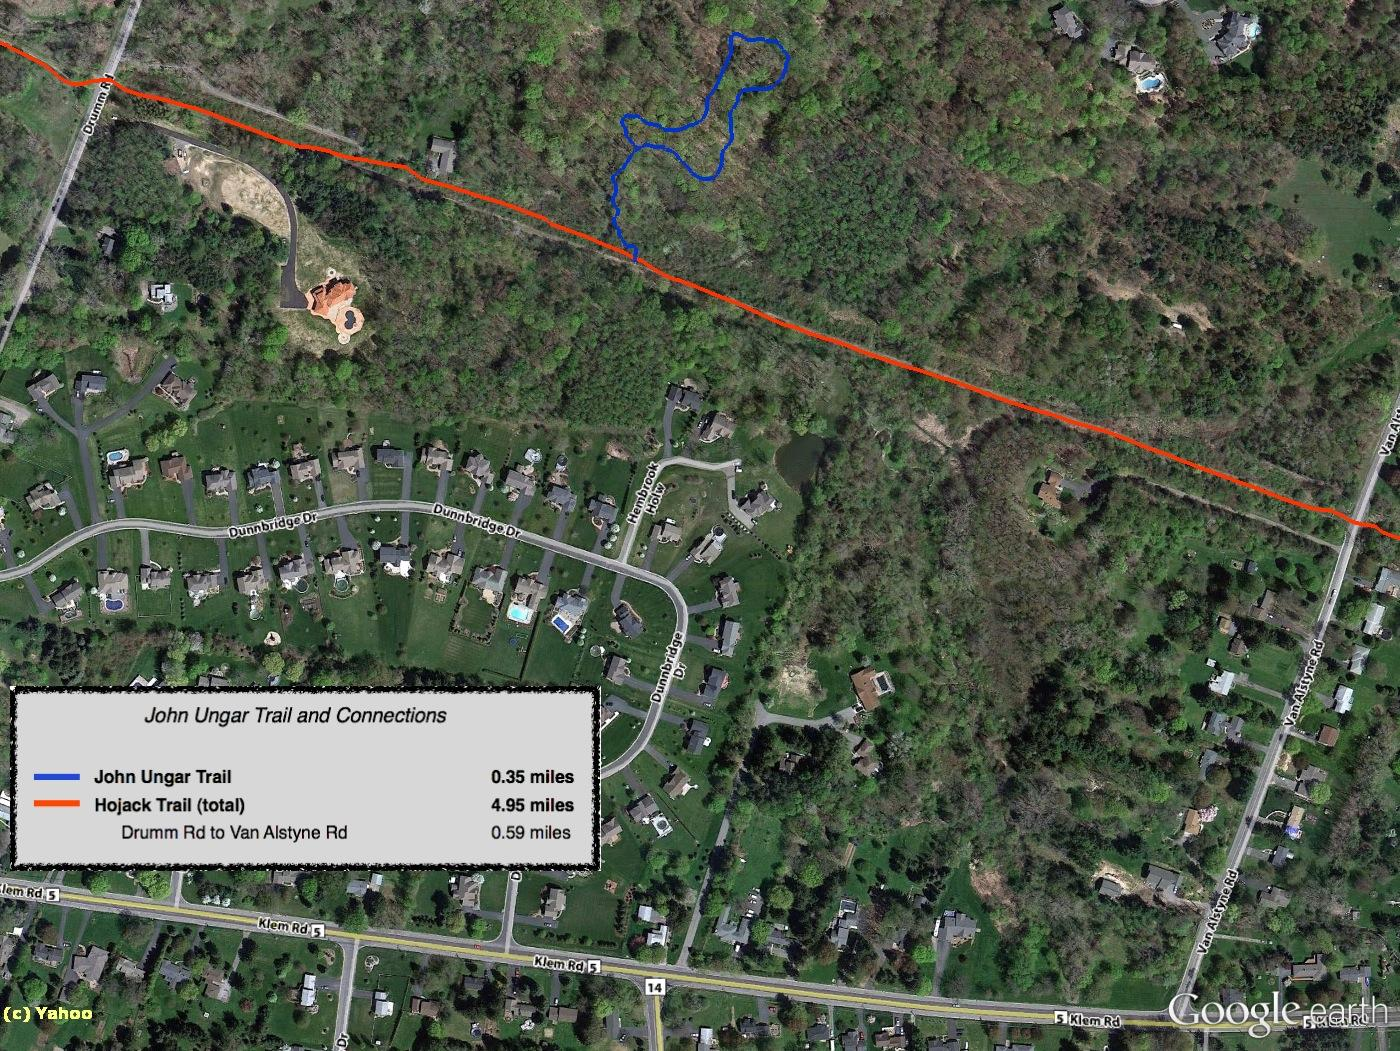 Trail Maps – Friends of Webster Trails on types of maps, military maps, aerial maps, city maps, wall maps, topographic maps, weather maps, state maps, physical maps, road maps, street maps, digital maps, live maps, driving directions, radar maps, internet maps, google maps, sites atlas thematic maps, gis maps, world maps, thematic maps, topo maps, topographical maps, historical maps, aerial photographs, msn maps, dvd maps, temperature maps, pomorskie poland maps, earth maps, lake maps, political maps, space maps,